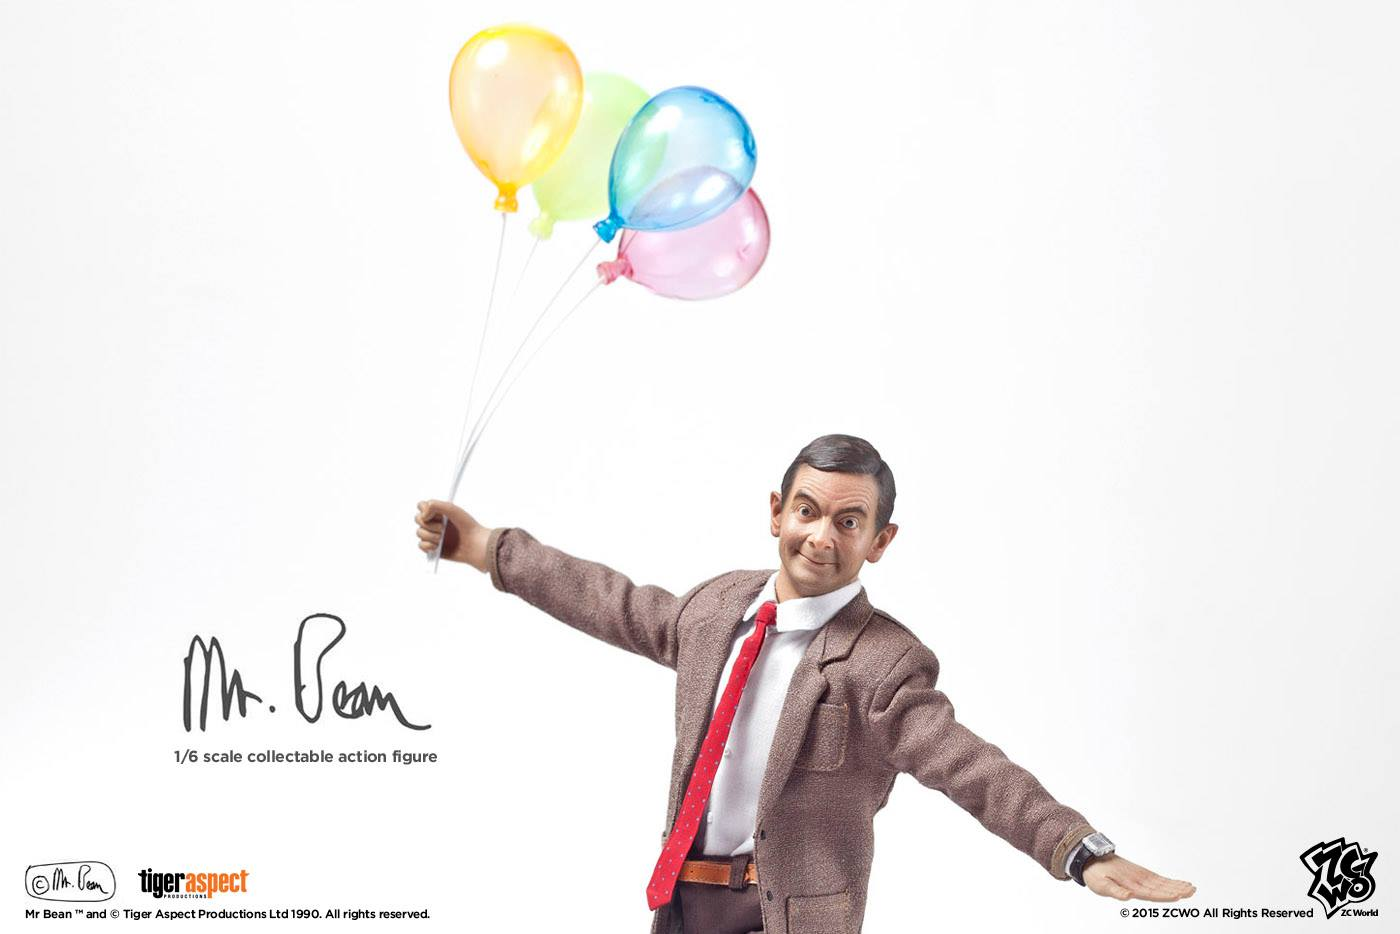 [ZCWO] Mr. Bean - 1/6 scale 150242me3n6ujzjlh6hqaz